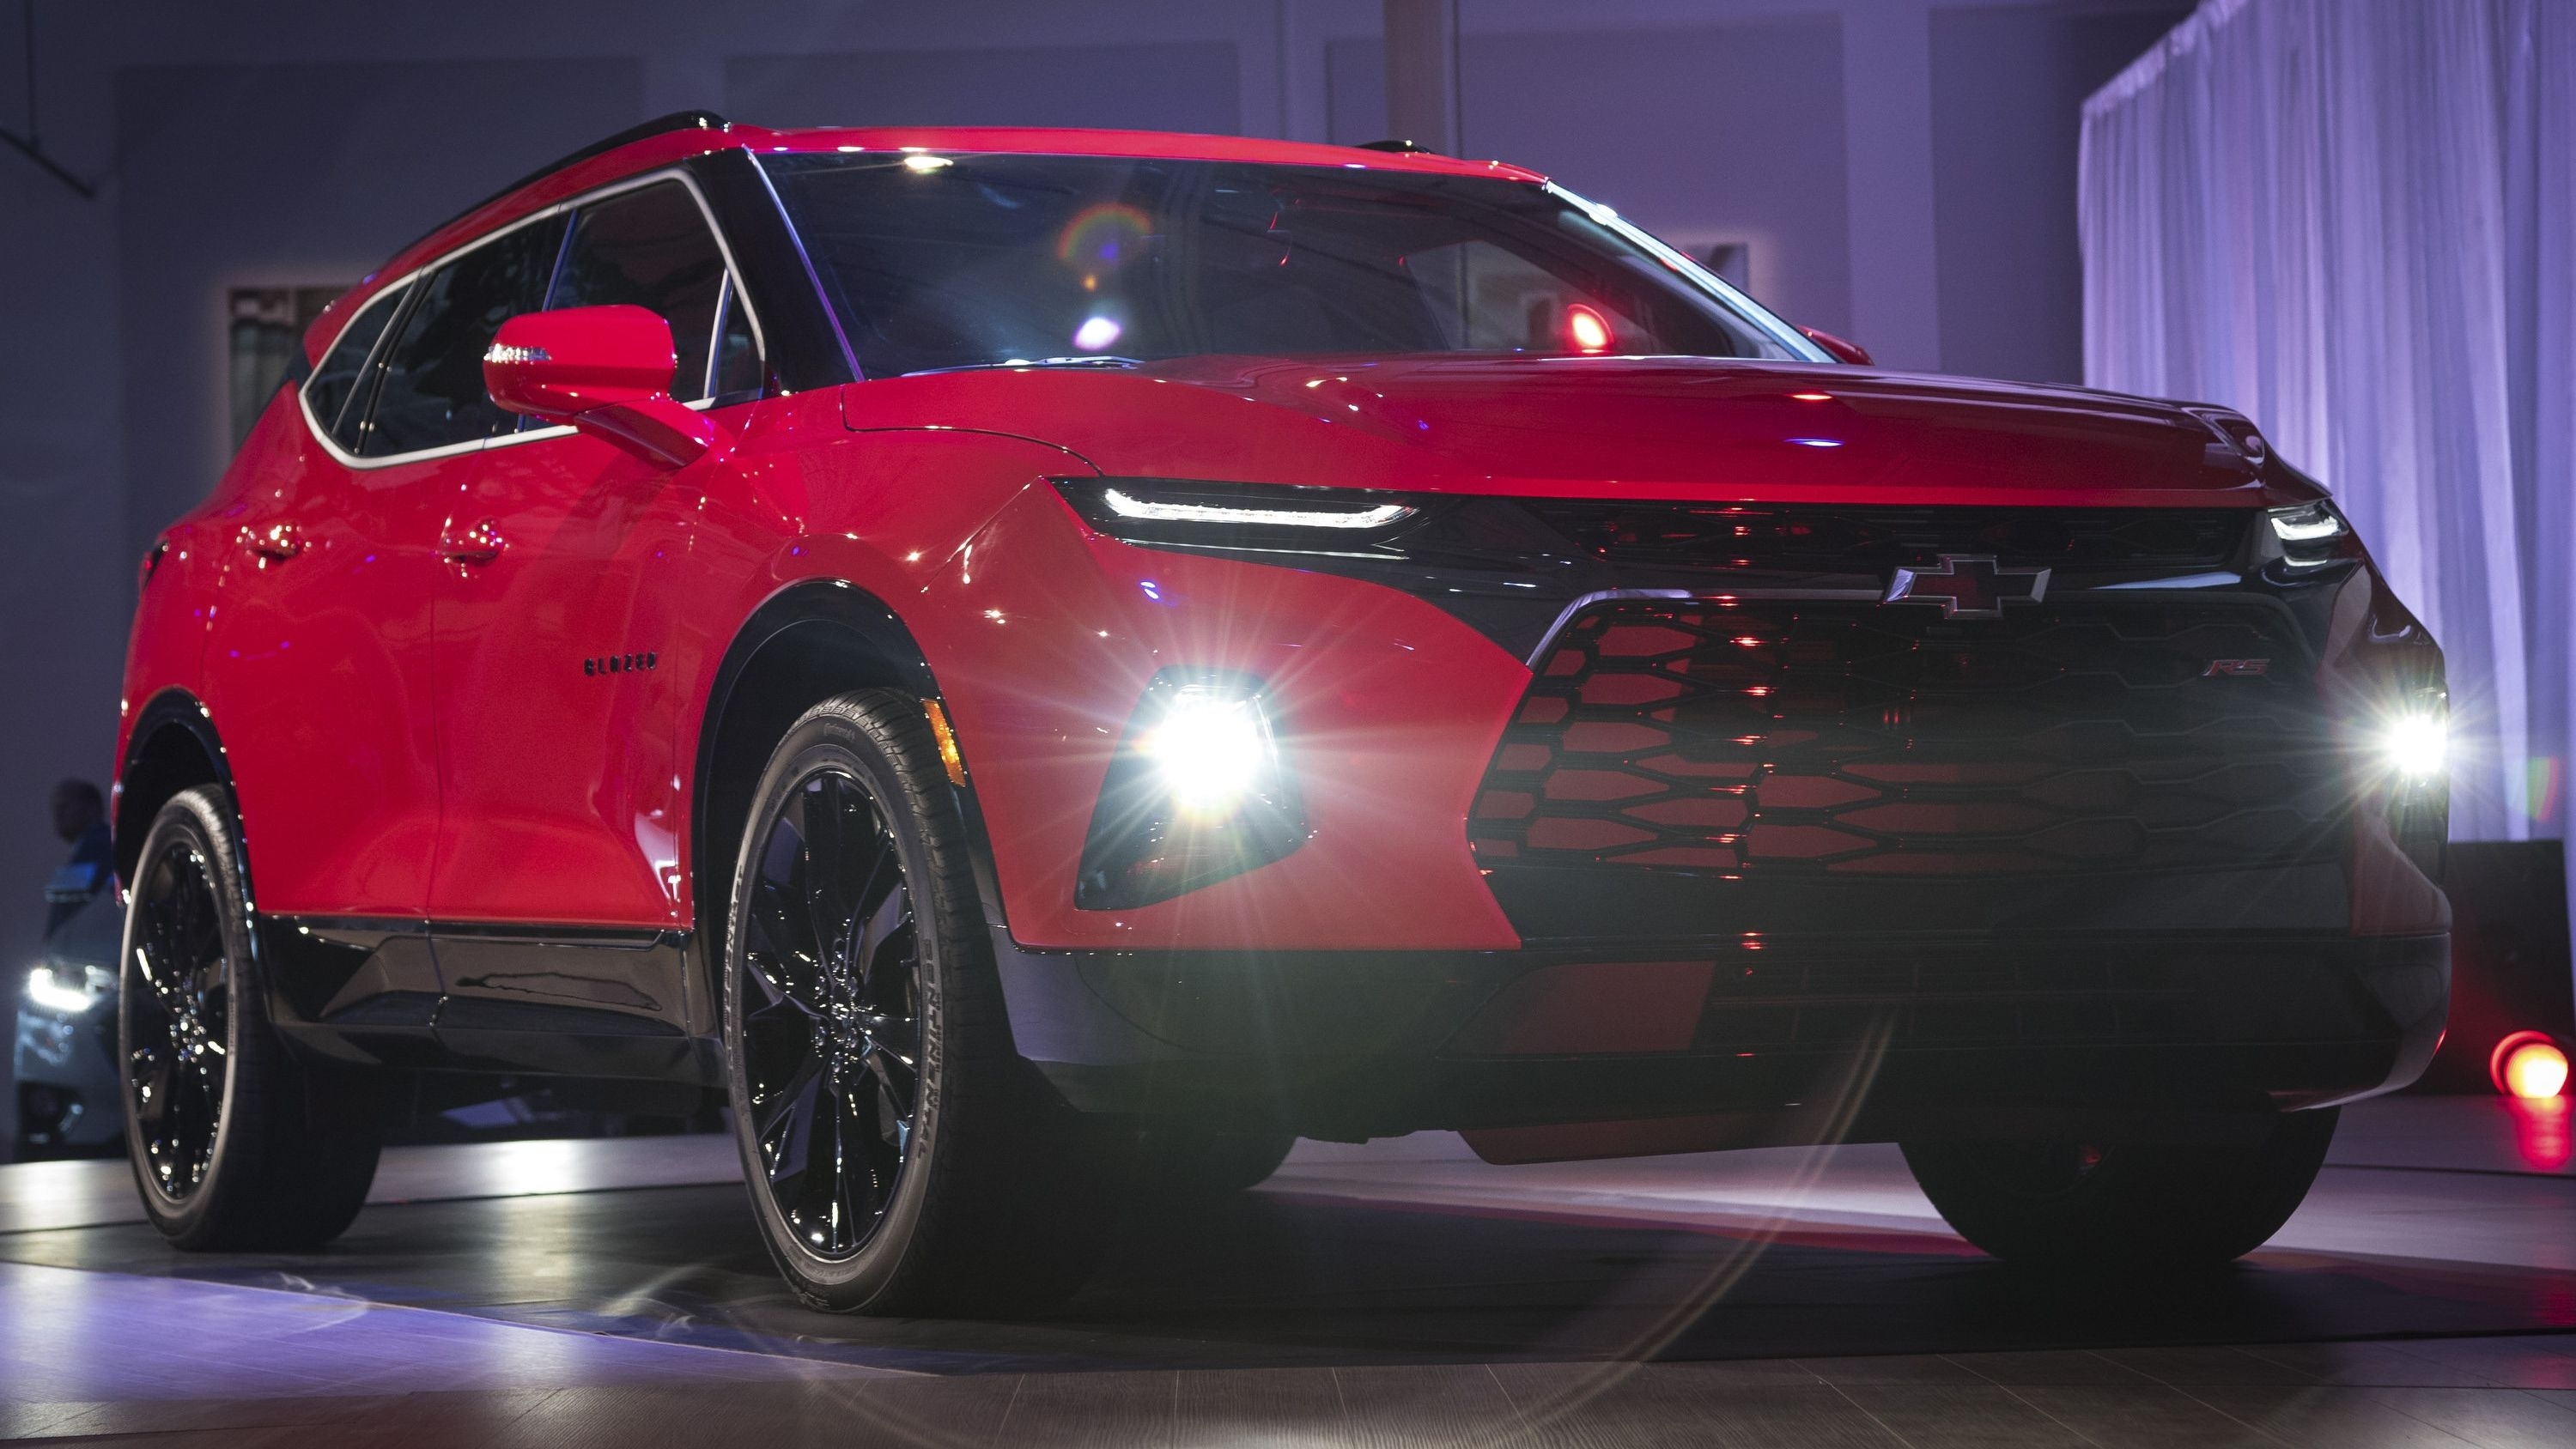 The New Chevrolet Blazer Is Here And It Looks Like An Oversized Camaro Top Speed Chevrolet Blazer Chevy Trailblazer Chevrolet Trailblazer